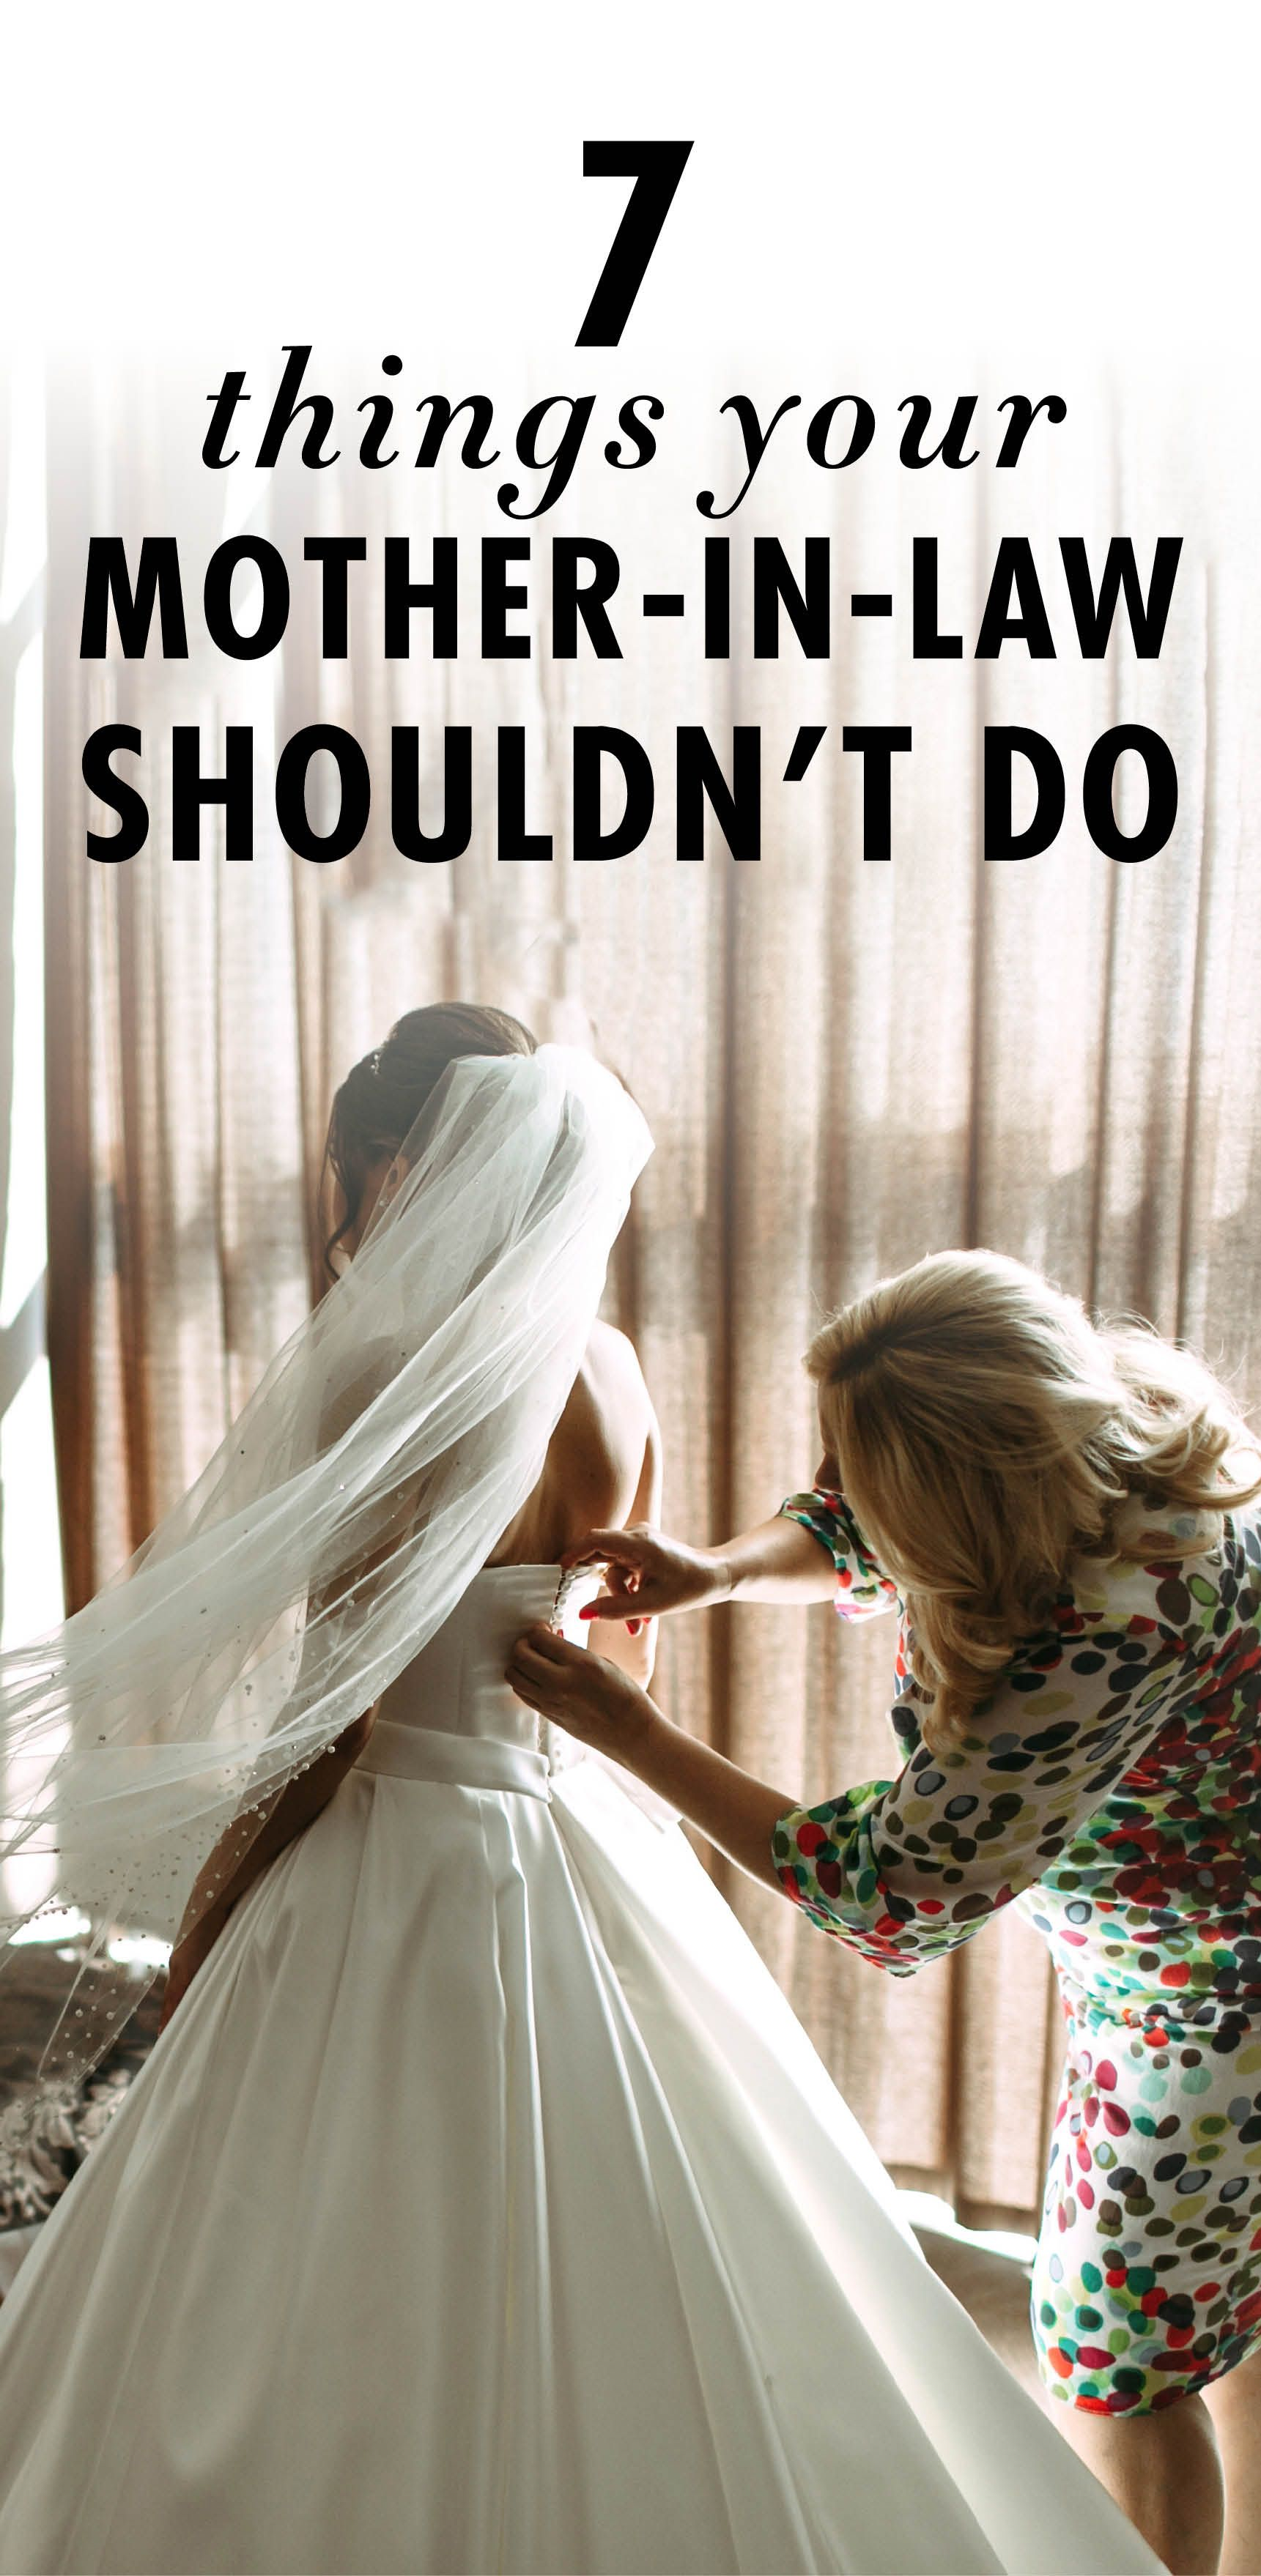 The Wedding Planning Process Can Be Incredibly Stressful And Not Necessarily Because Of The Work Invol Wedding Problems Wedding Planning Stress Wedding Stress